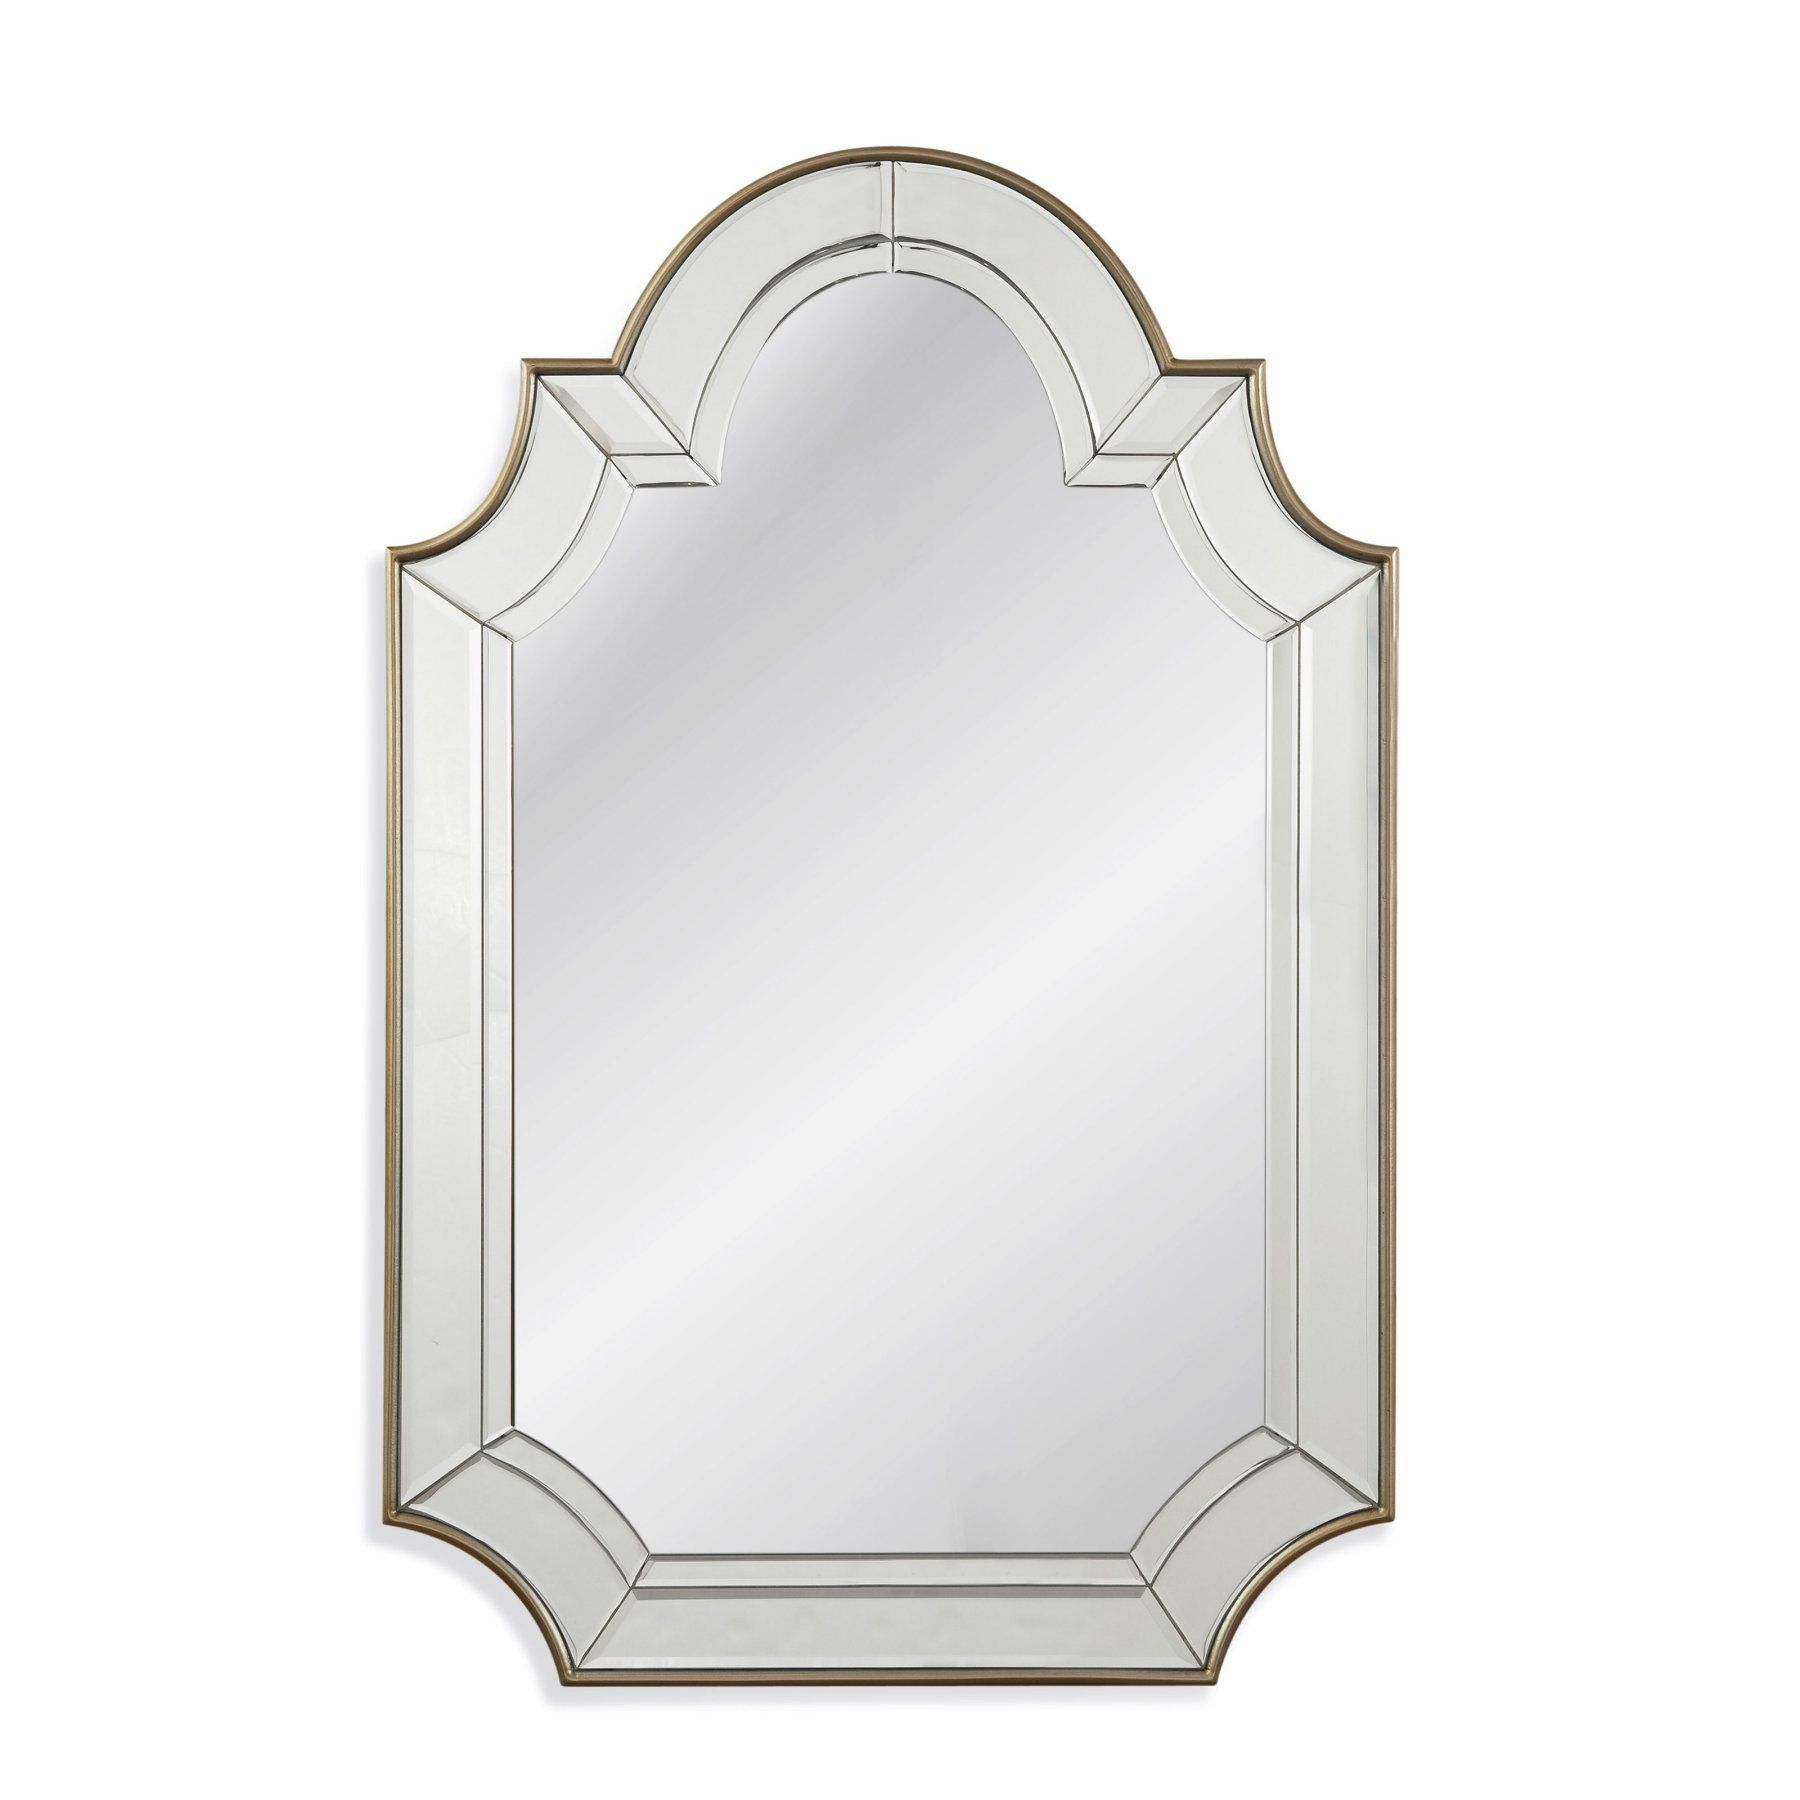 Bassett Mirror Phaedra Wall Mirror – 30w X 46h In With Ekaterina Arch/crowned Top Wall Mirrors (View 8 of 30)